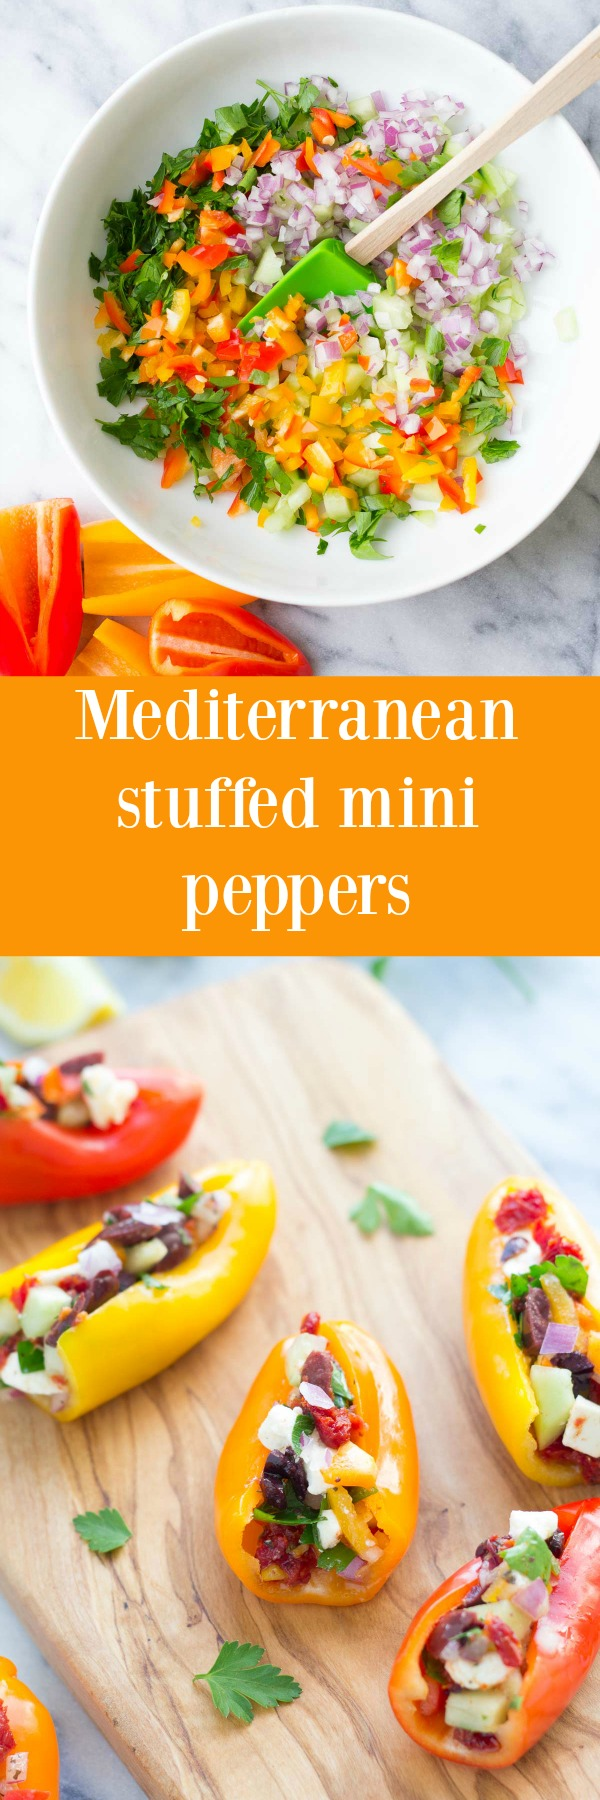 These Mediterranean Stuffed Mini Peppers are a healthy, vegetarian appetizer or snack with lots of crunch! With a Greek vinaigrette, feta cheese, and kalamata olives!